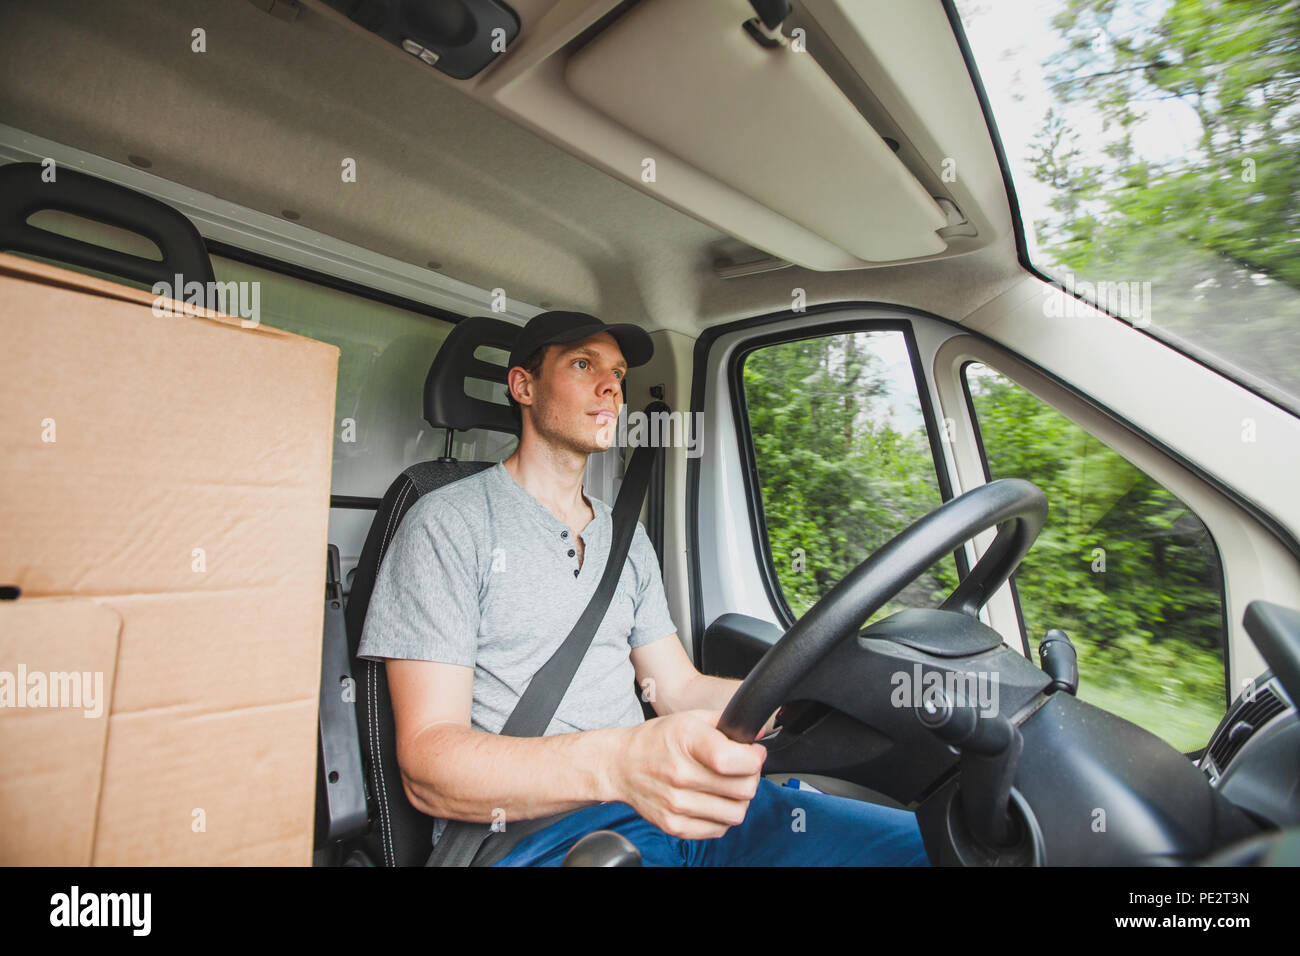 driver man driving delivery truck car vehicle, service of delivering package cargo, transportation occupation job - Stock Image